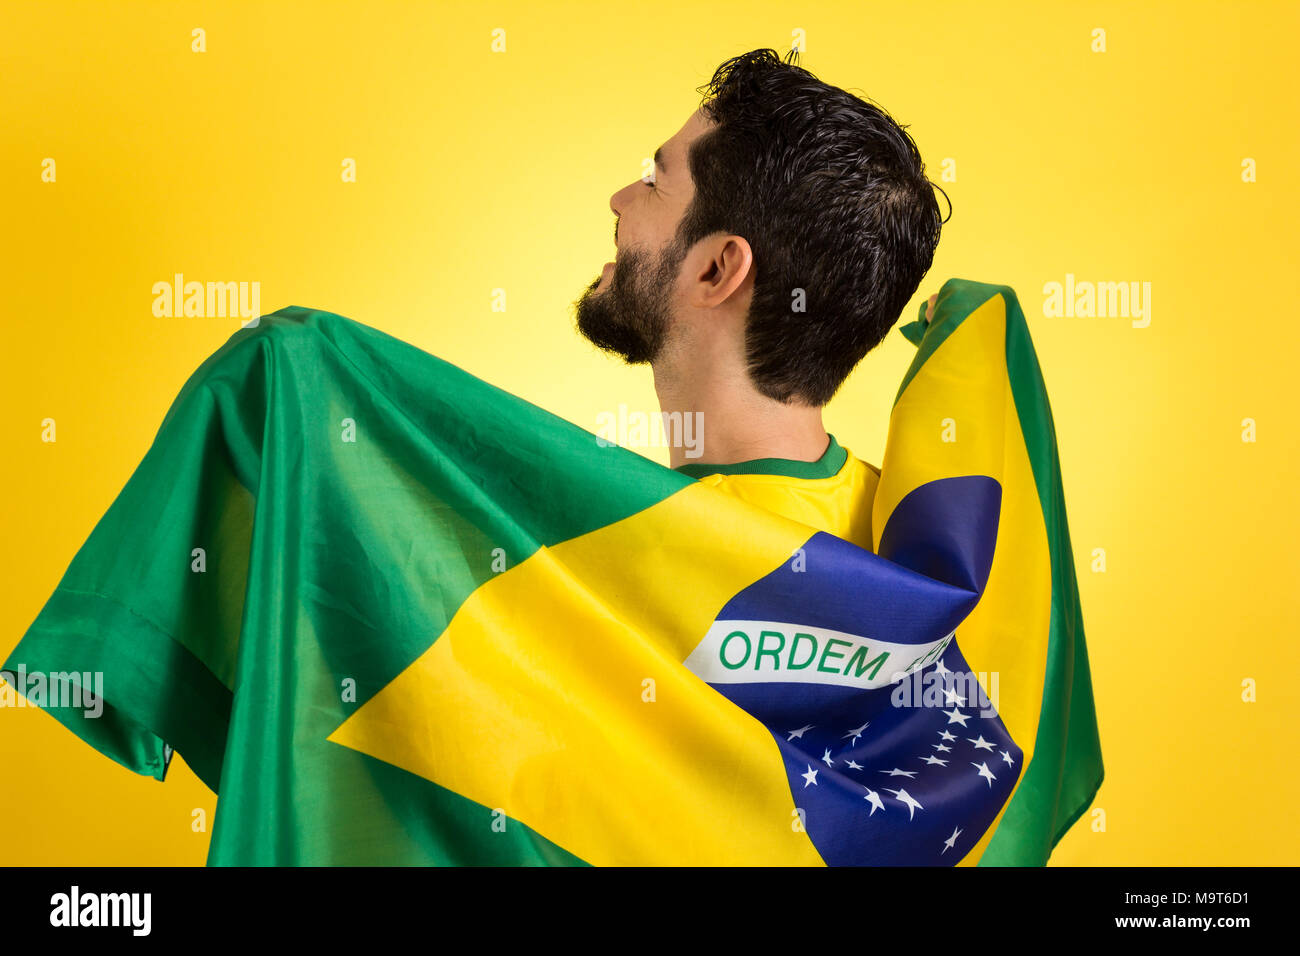 190a40e8d Brazilian soccer football team player. One supporter and fan holding Brazil  flag. Wearing yellow uniform on yellow backdrop.